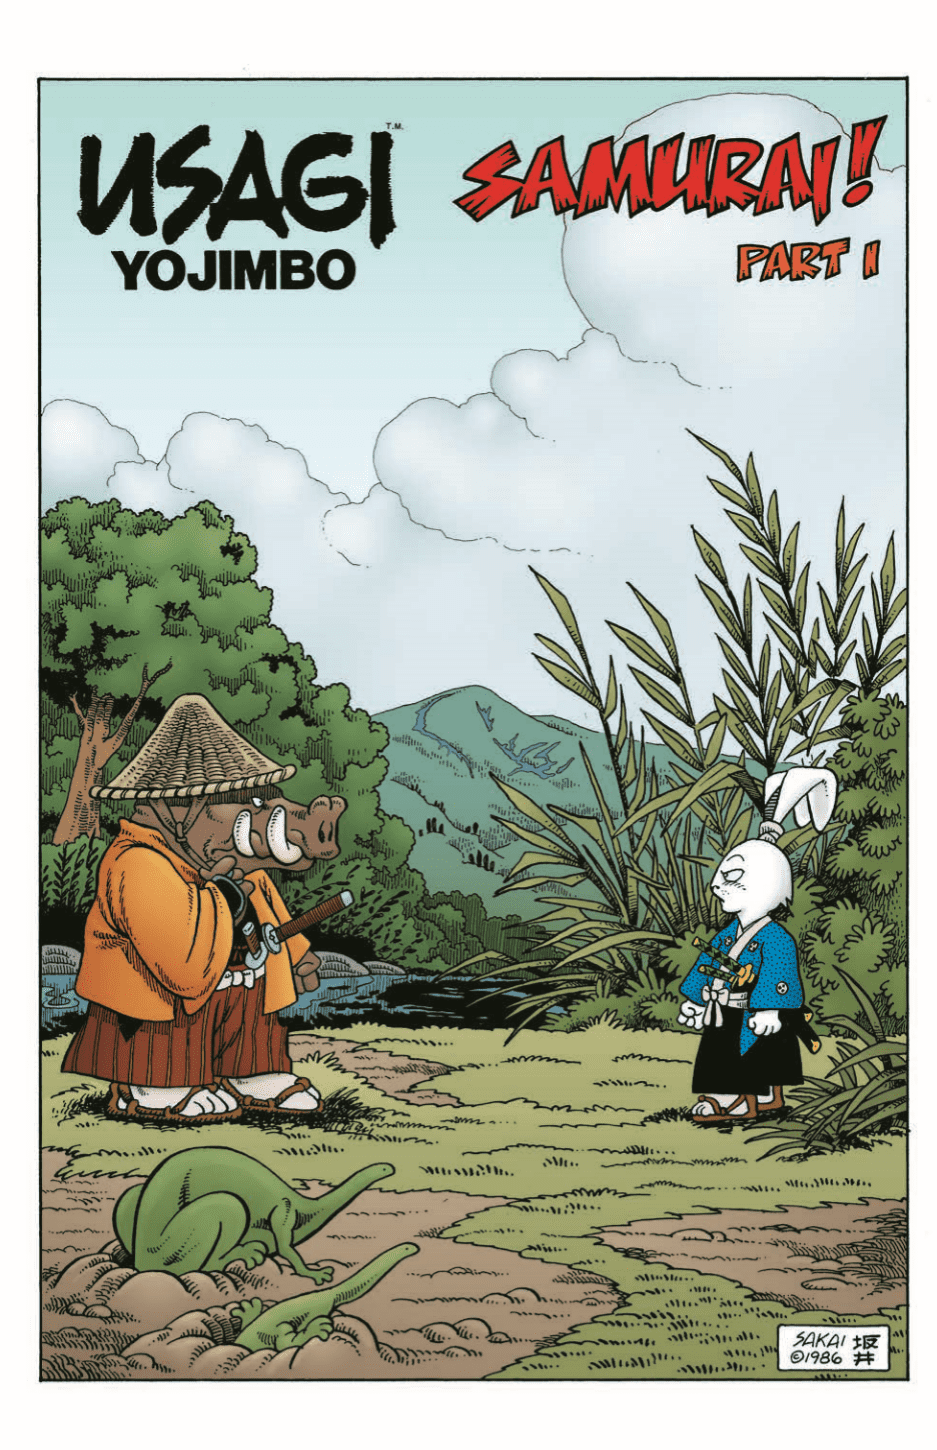 Usagi Yojimbo #1's beautiful beginning